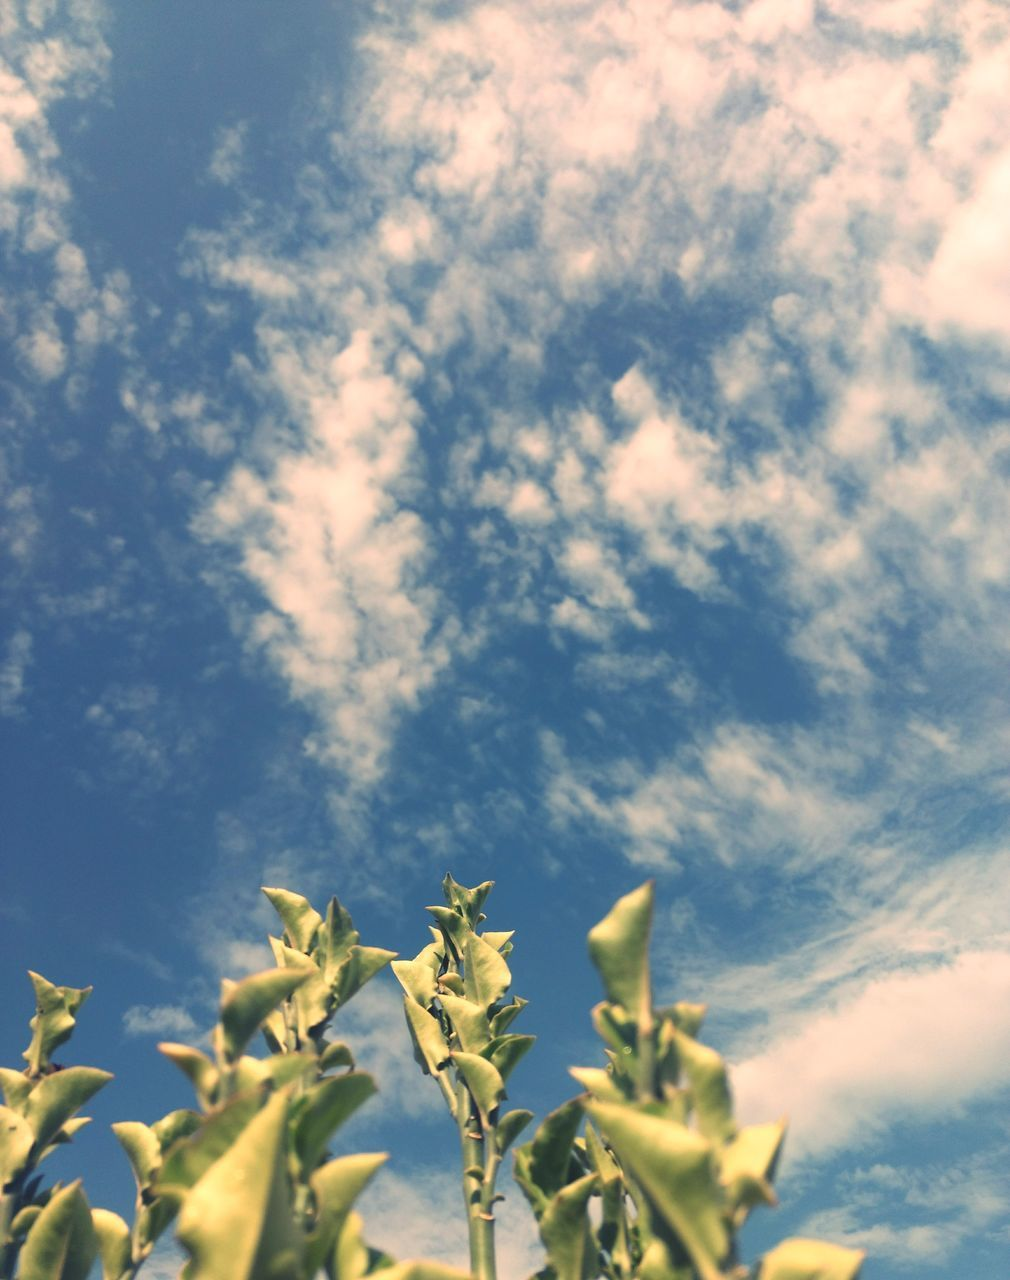 growth, nature, sky, plant, no people, low angle view, cloud - sky, beauty in nature, outdoors, day, tranquility, agriculture, scenics, fragility, flower, close-up, freshness